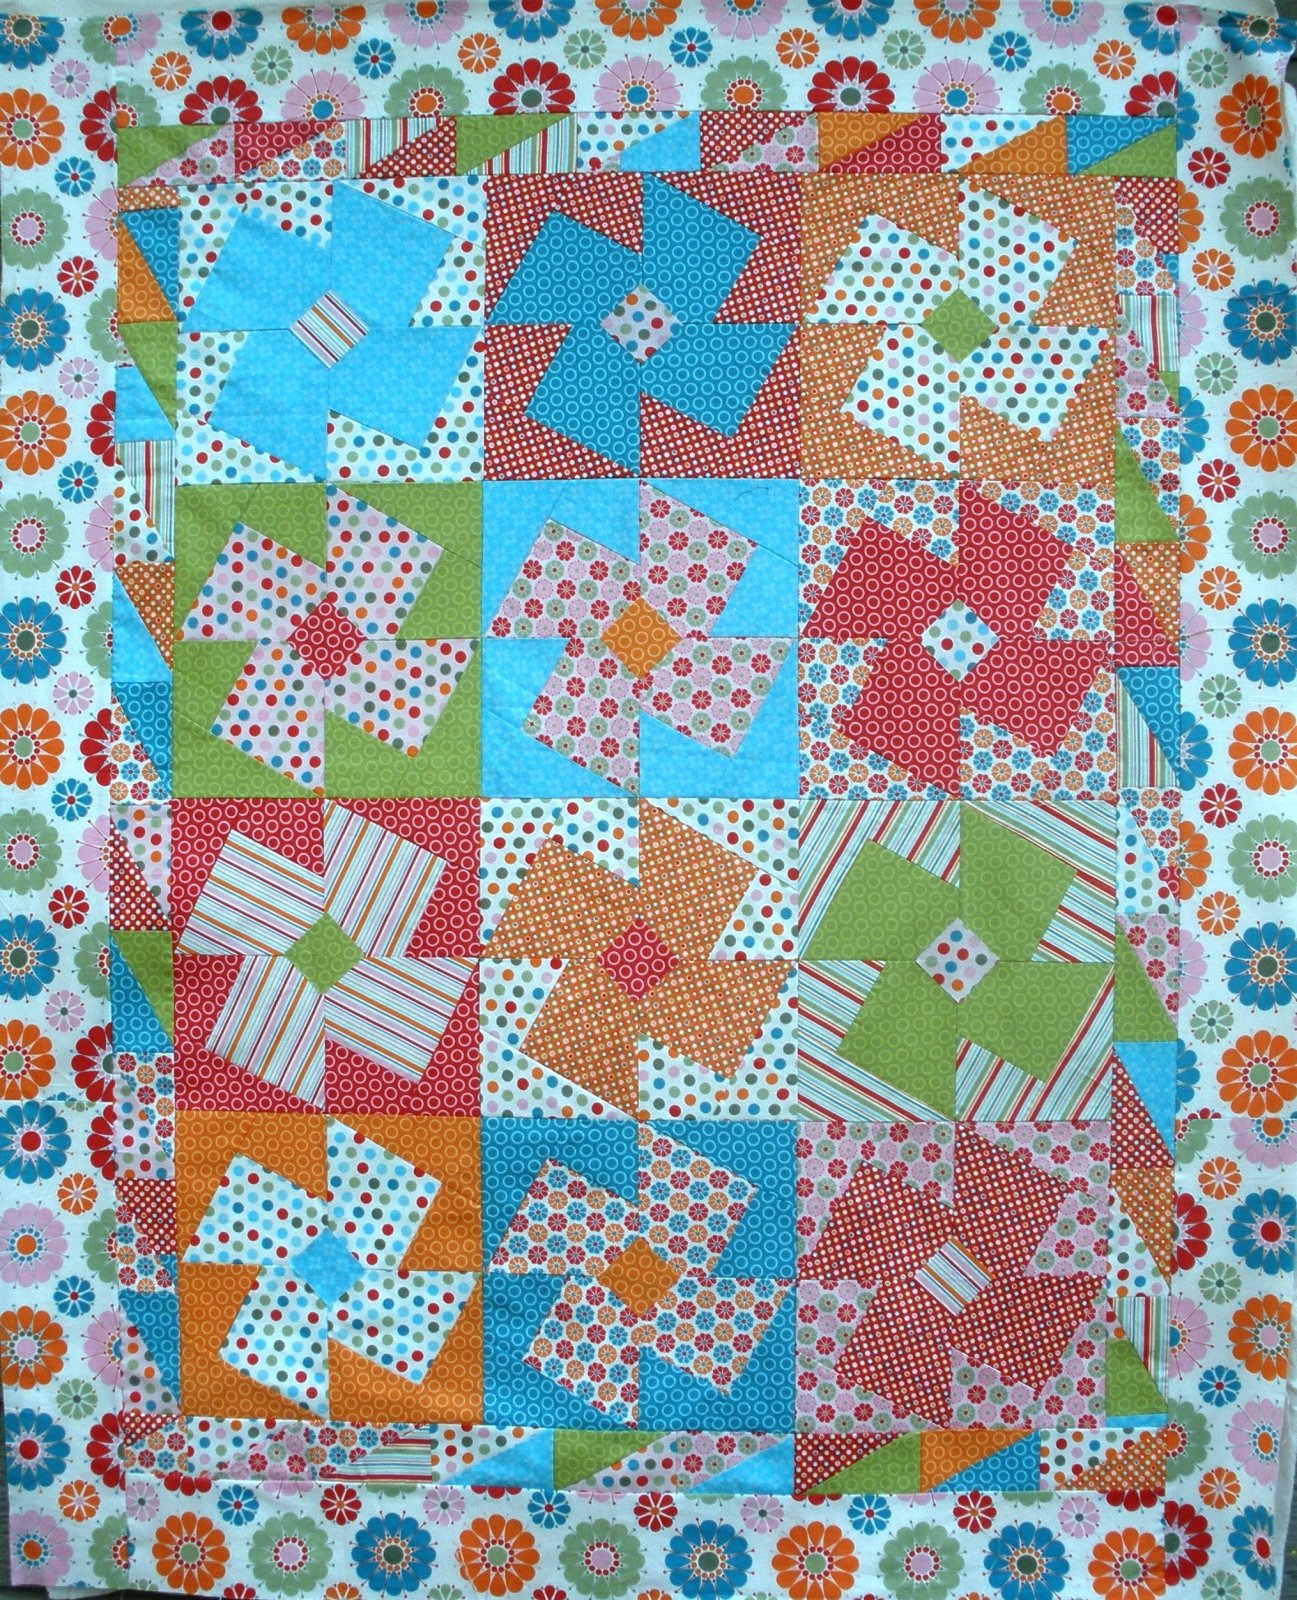 Bright Eyes X-Block Quilt Pattern